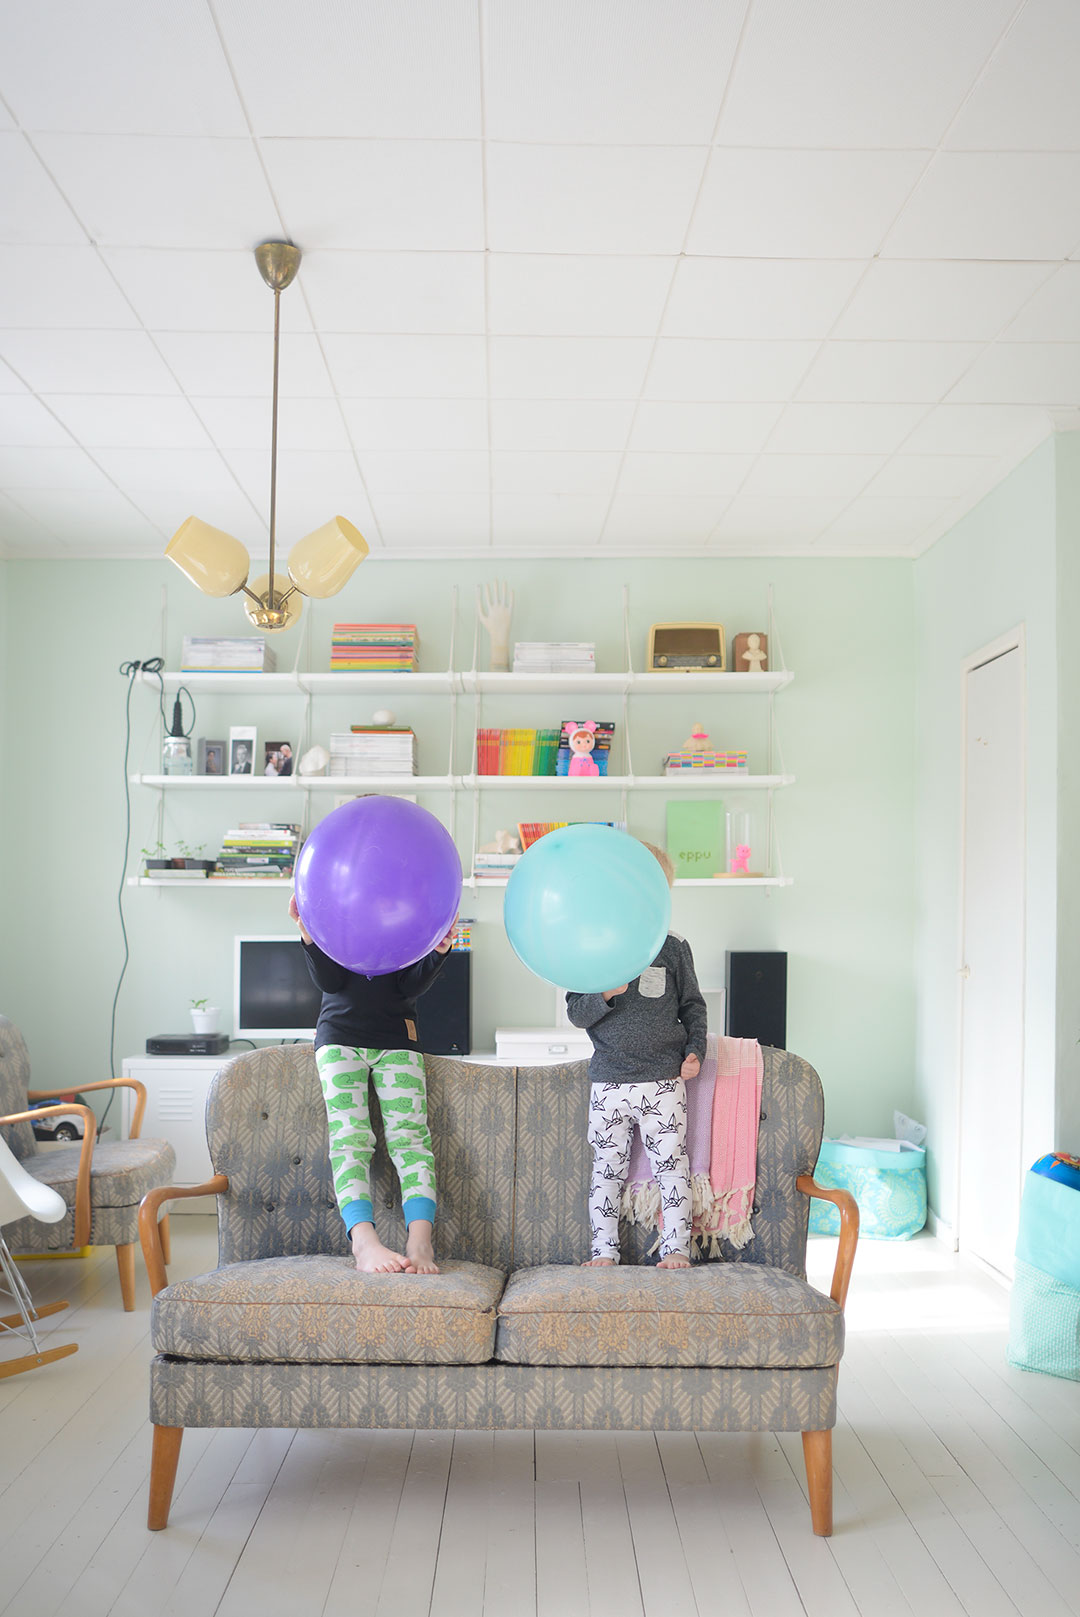 Balloon party and YO ZEN kids wear